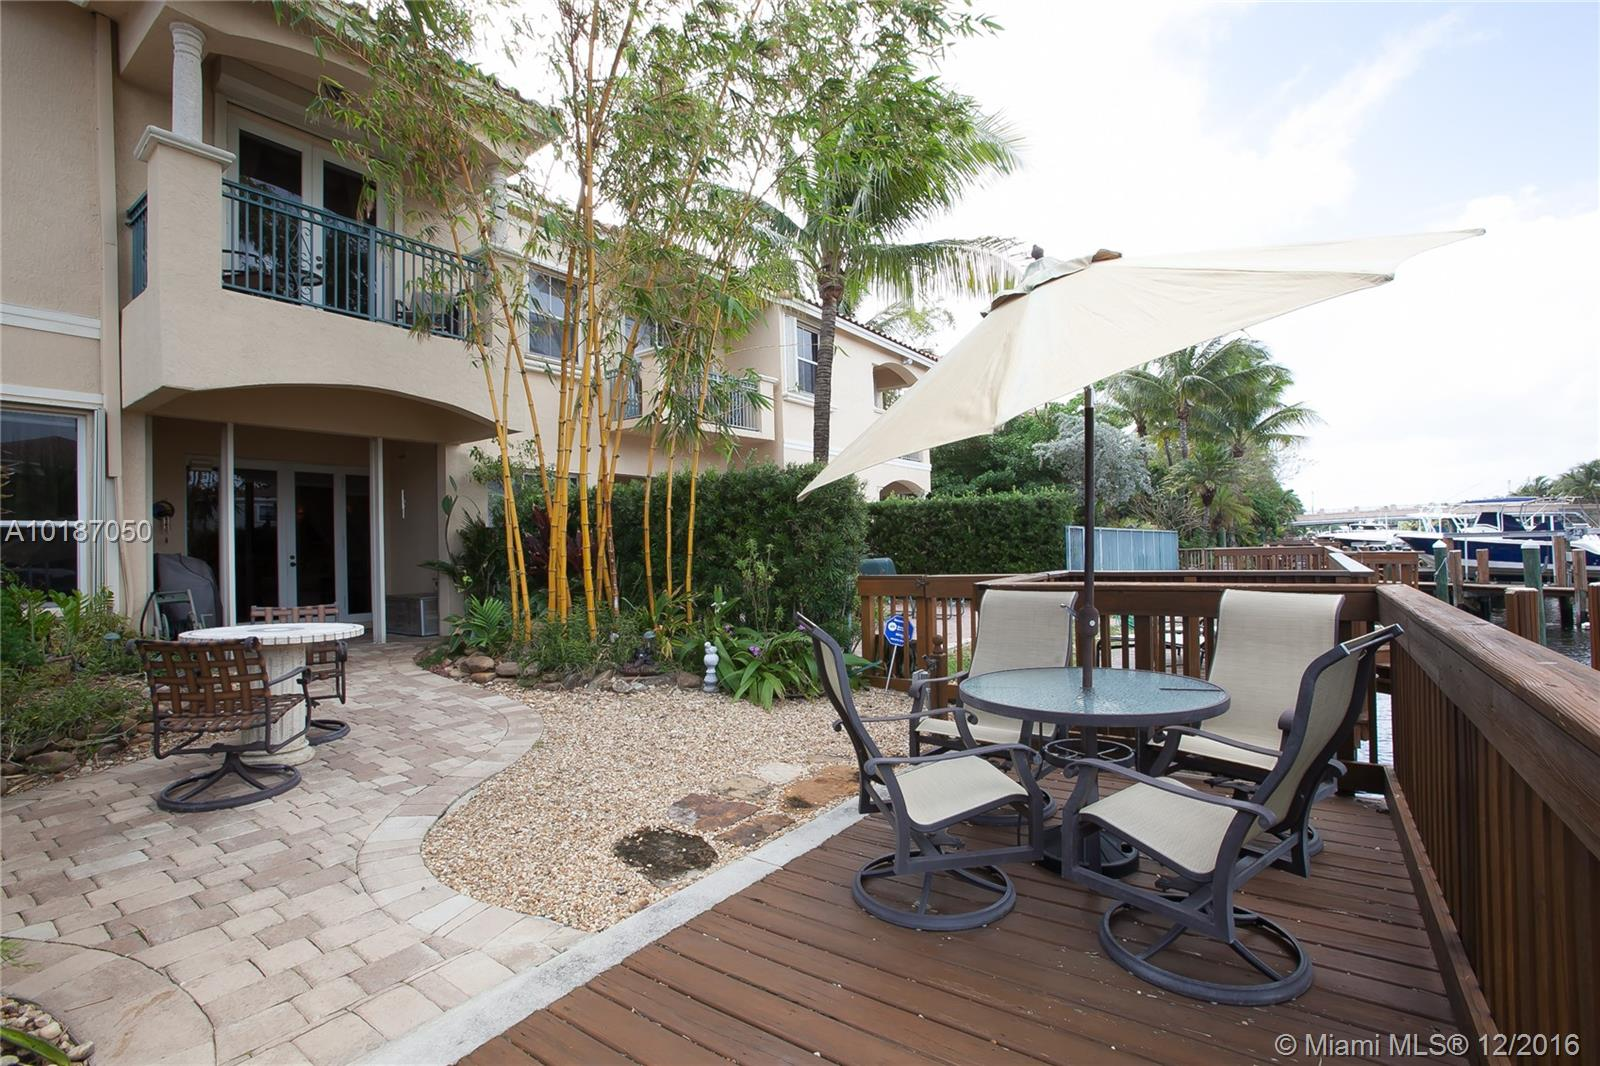 937 Harbor view n-937 hollywood--fl-33019-a10187050-Pic13